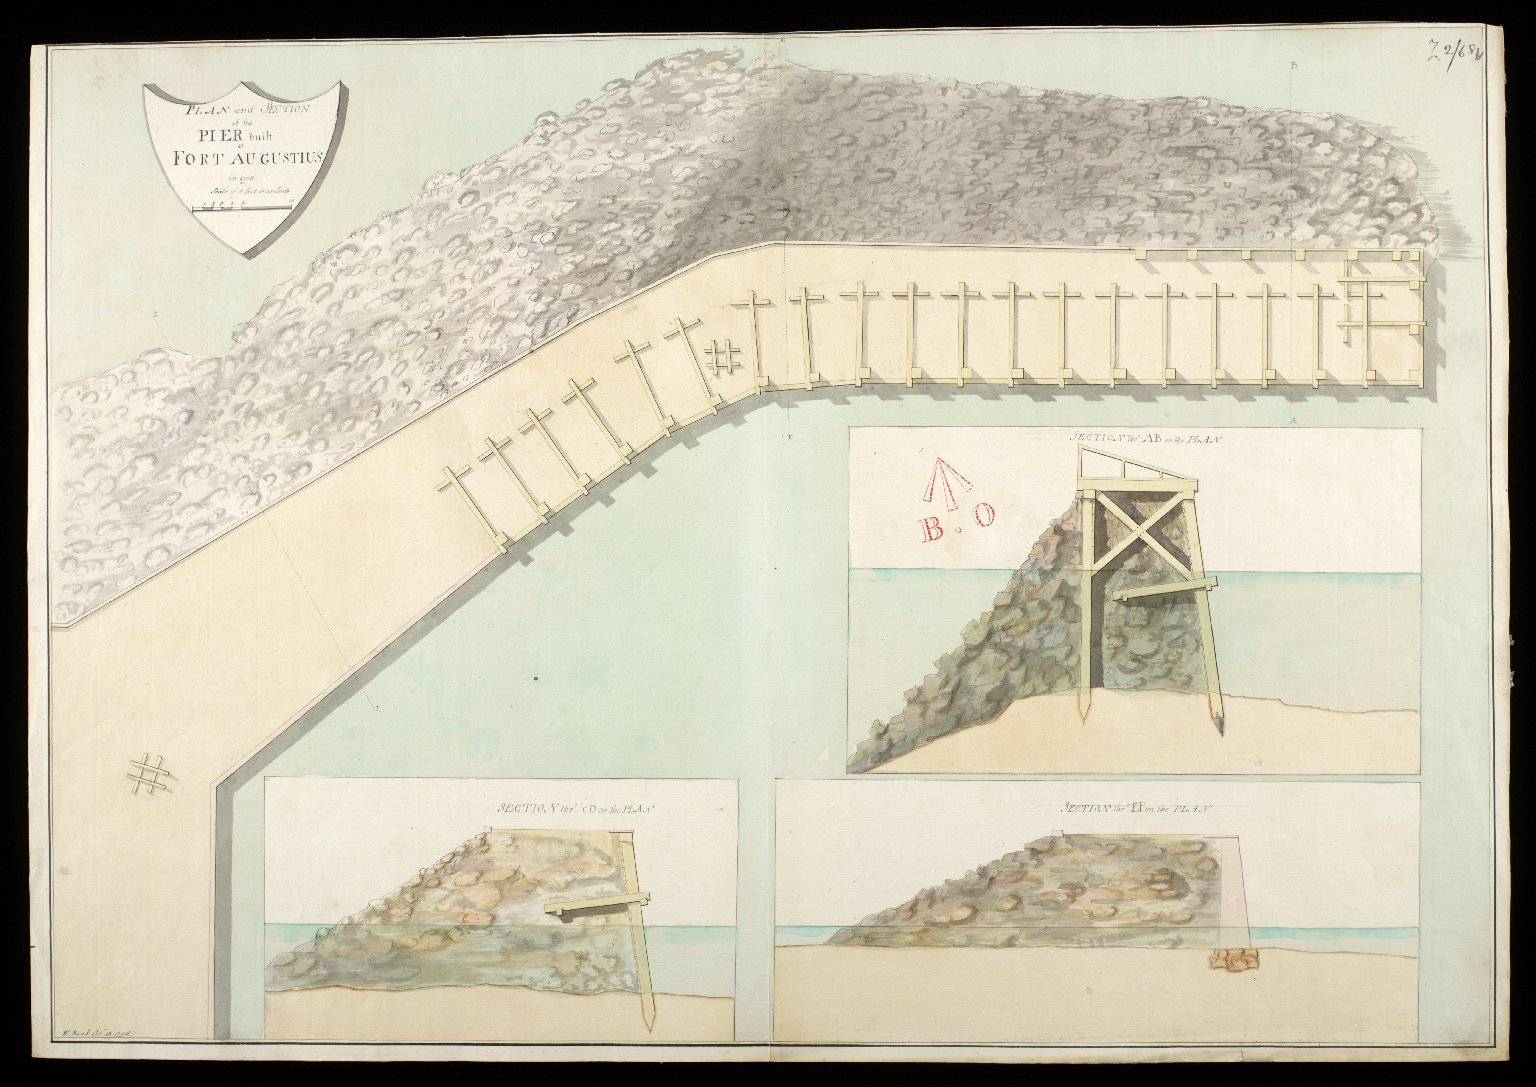 Plan and section of the pier built at Fort Augustus in 1753 [copy] [1 of 1]